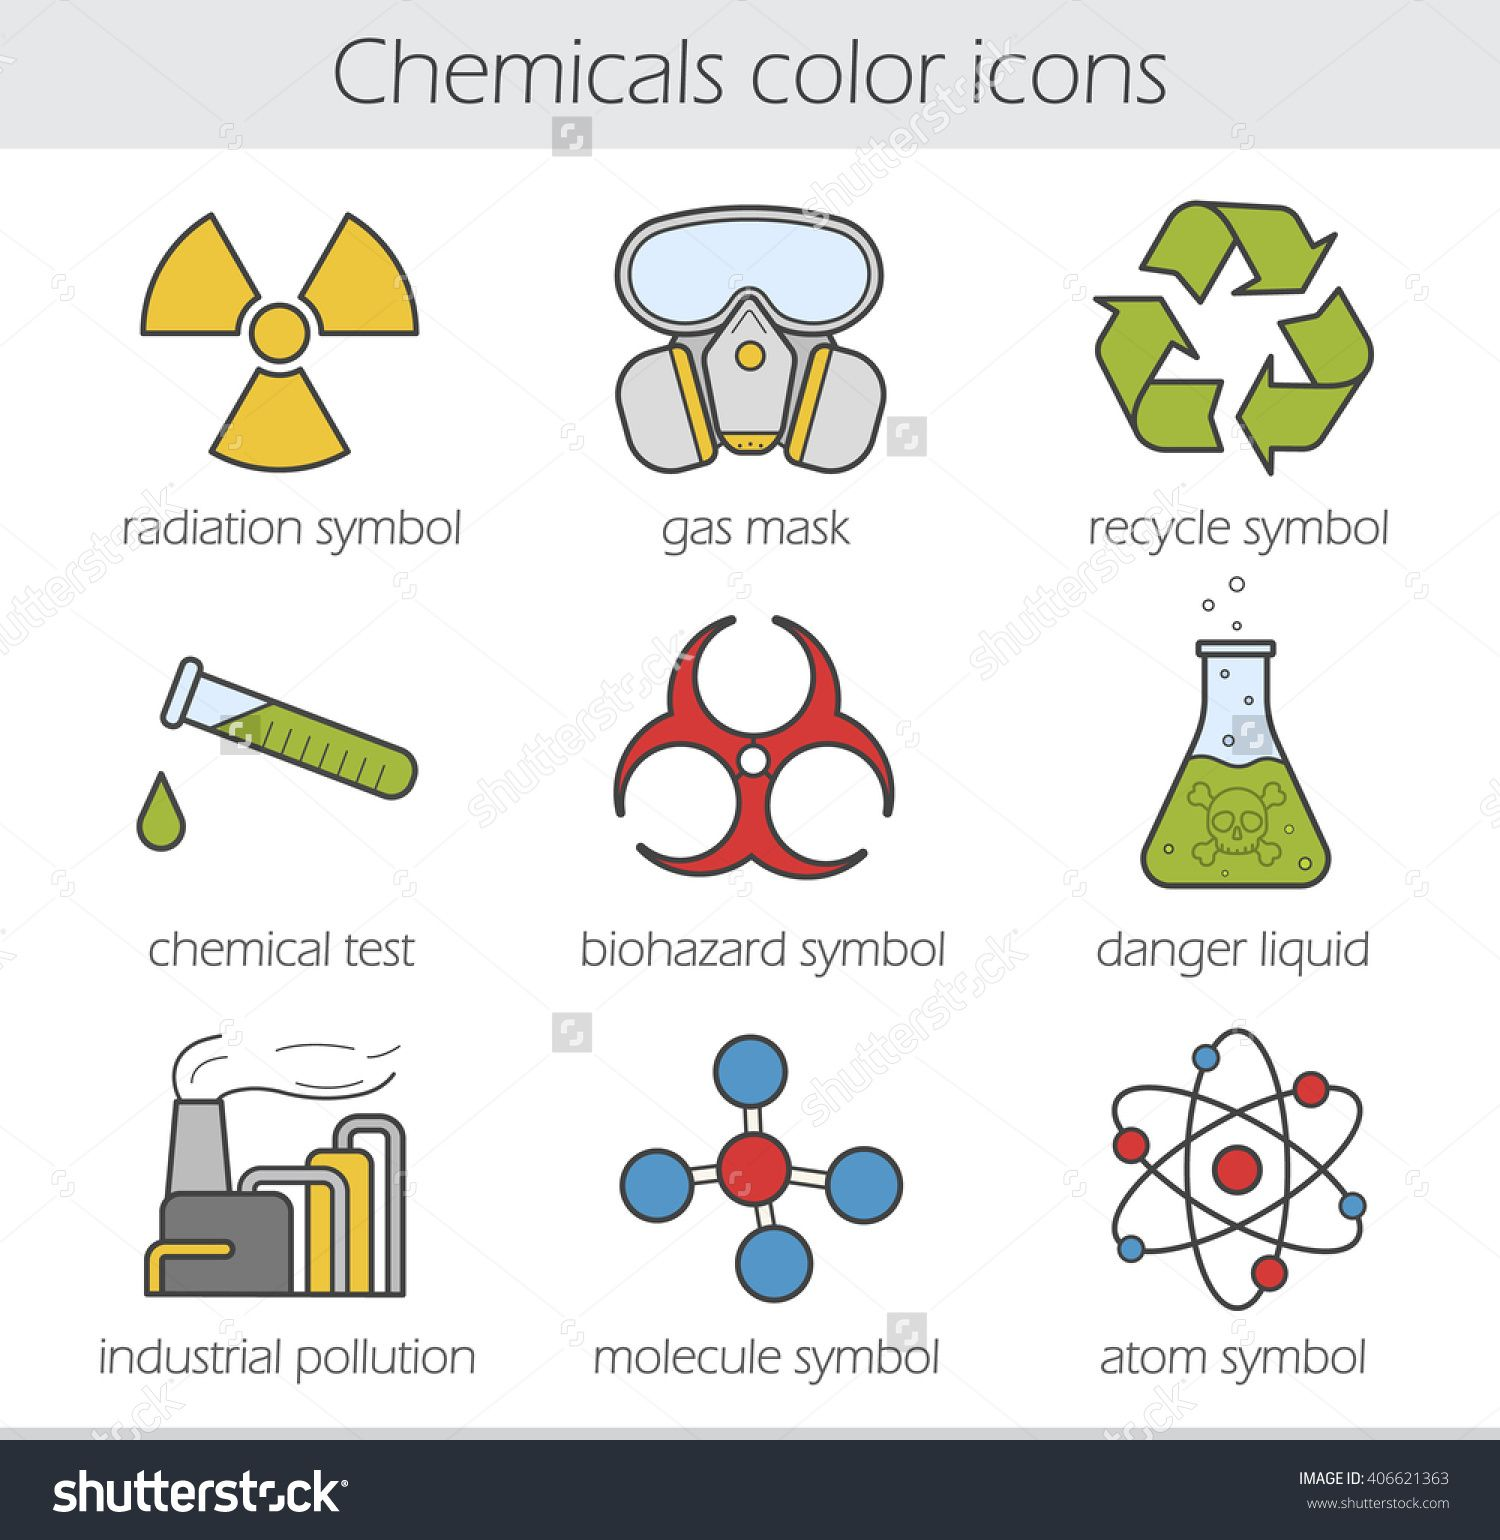 Image result for chemistry symbols Recycle symbol